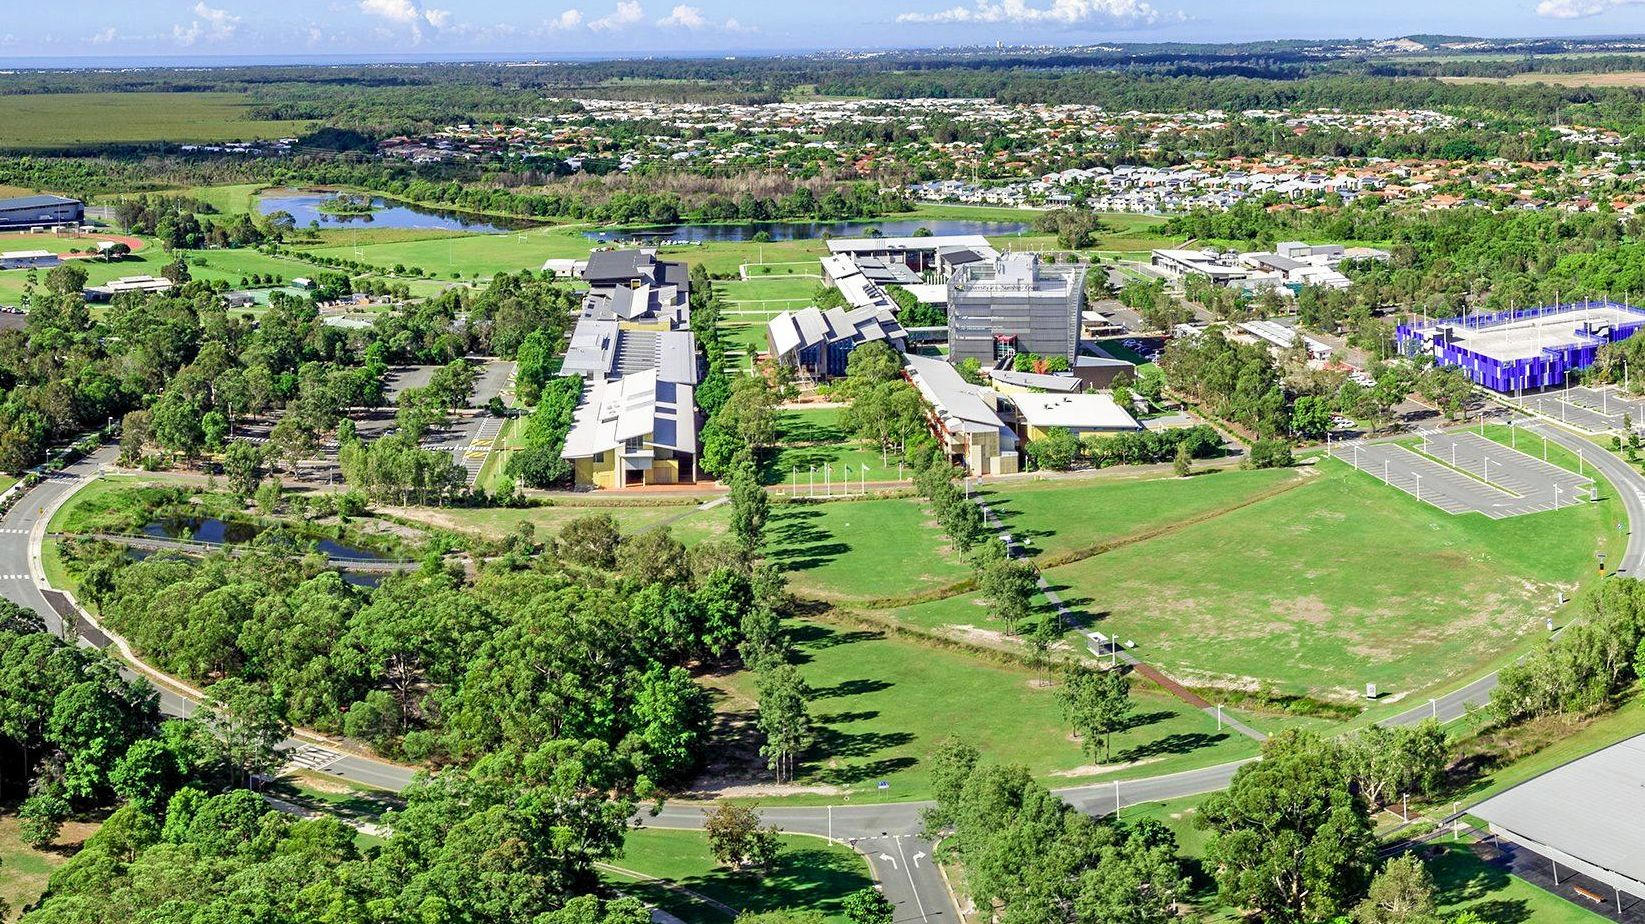 Sippy Downs grew quickly from grazing and sugar cane land in the late '80s to the biggest master-planned community on the Sunshine Coast for its time.